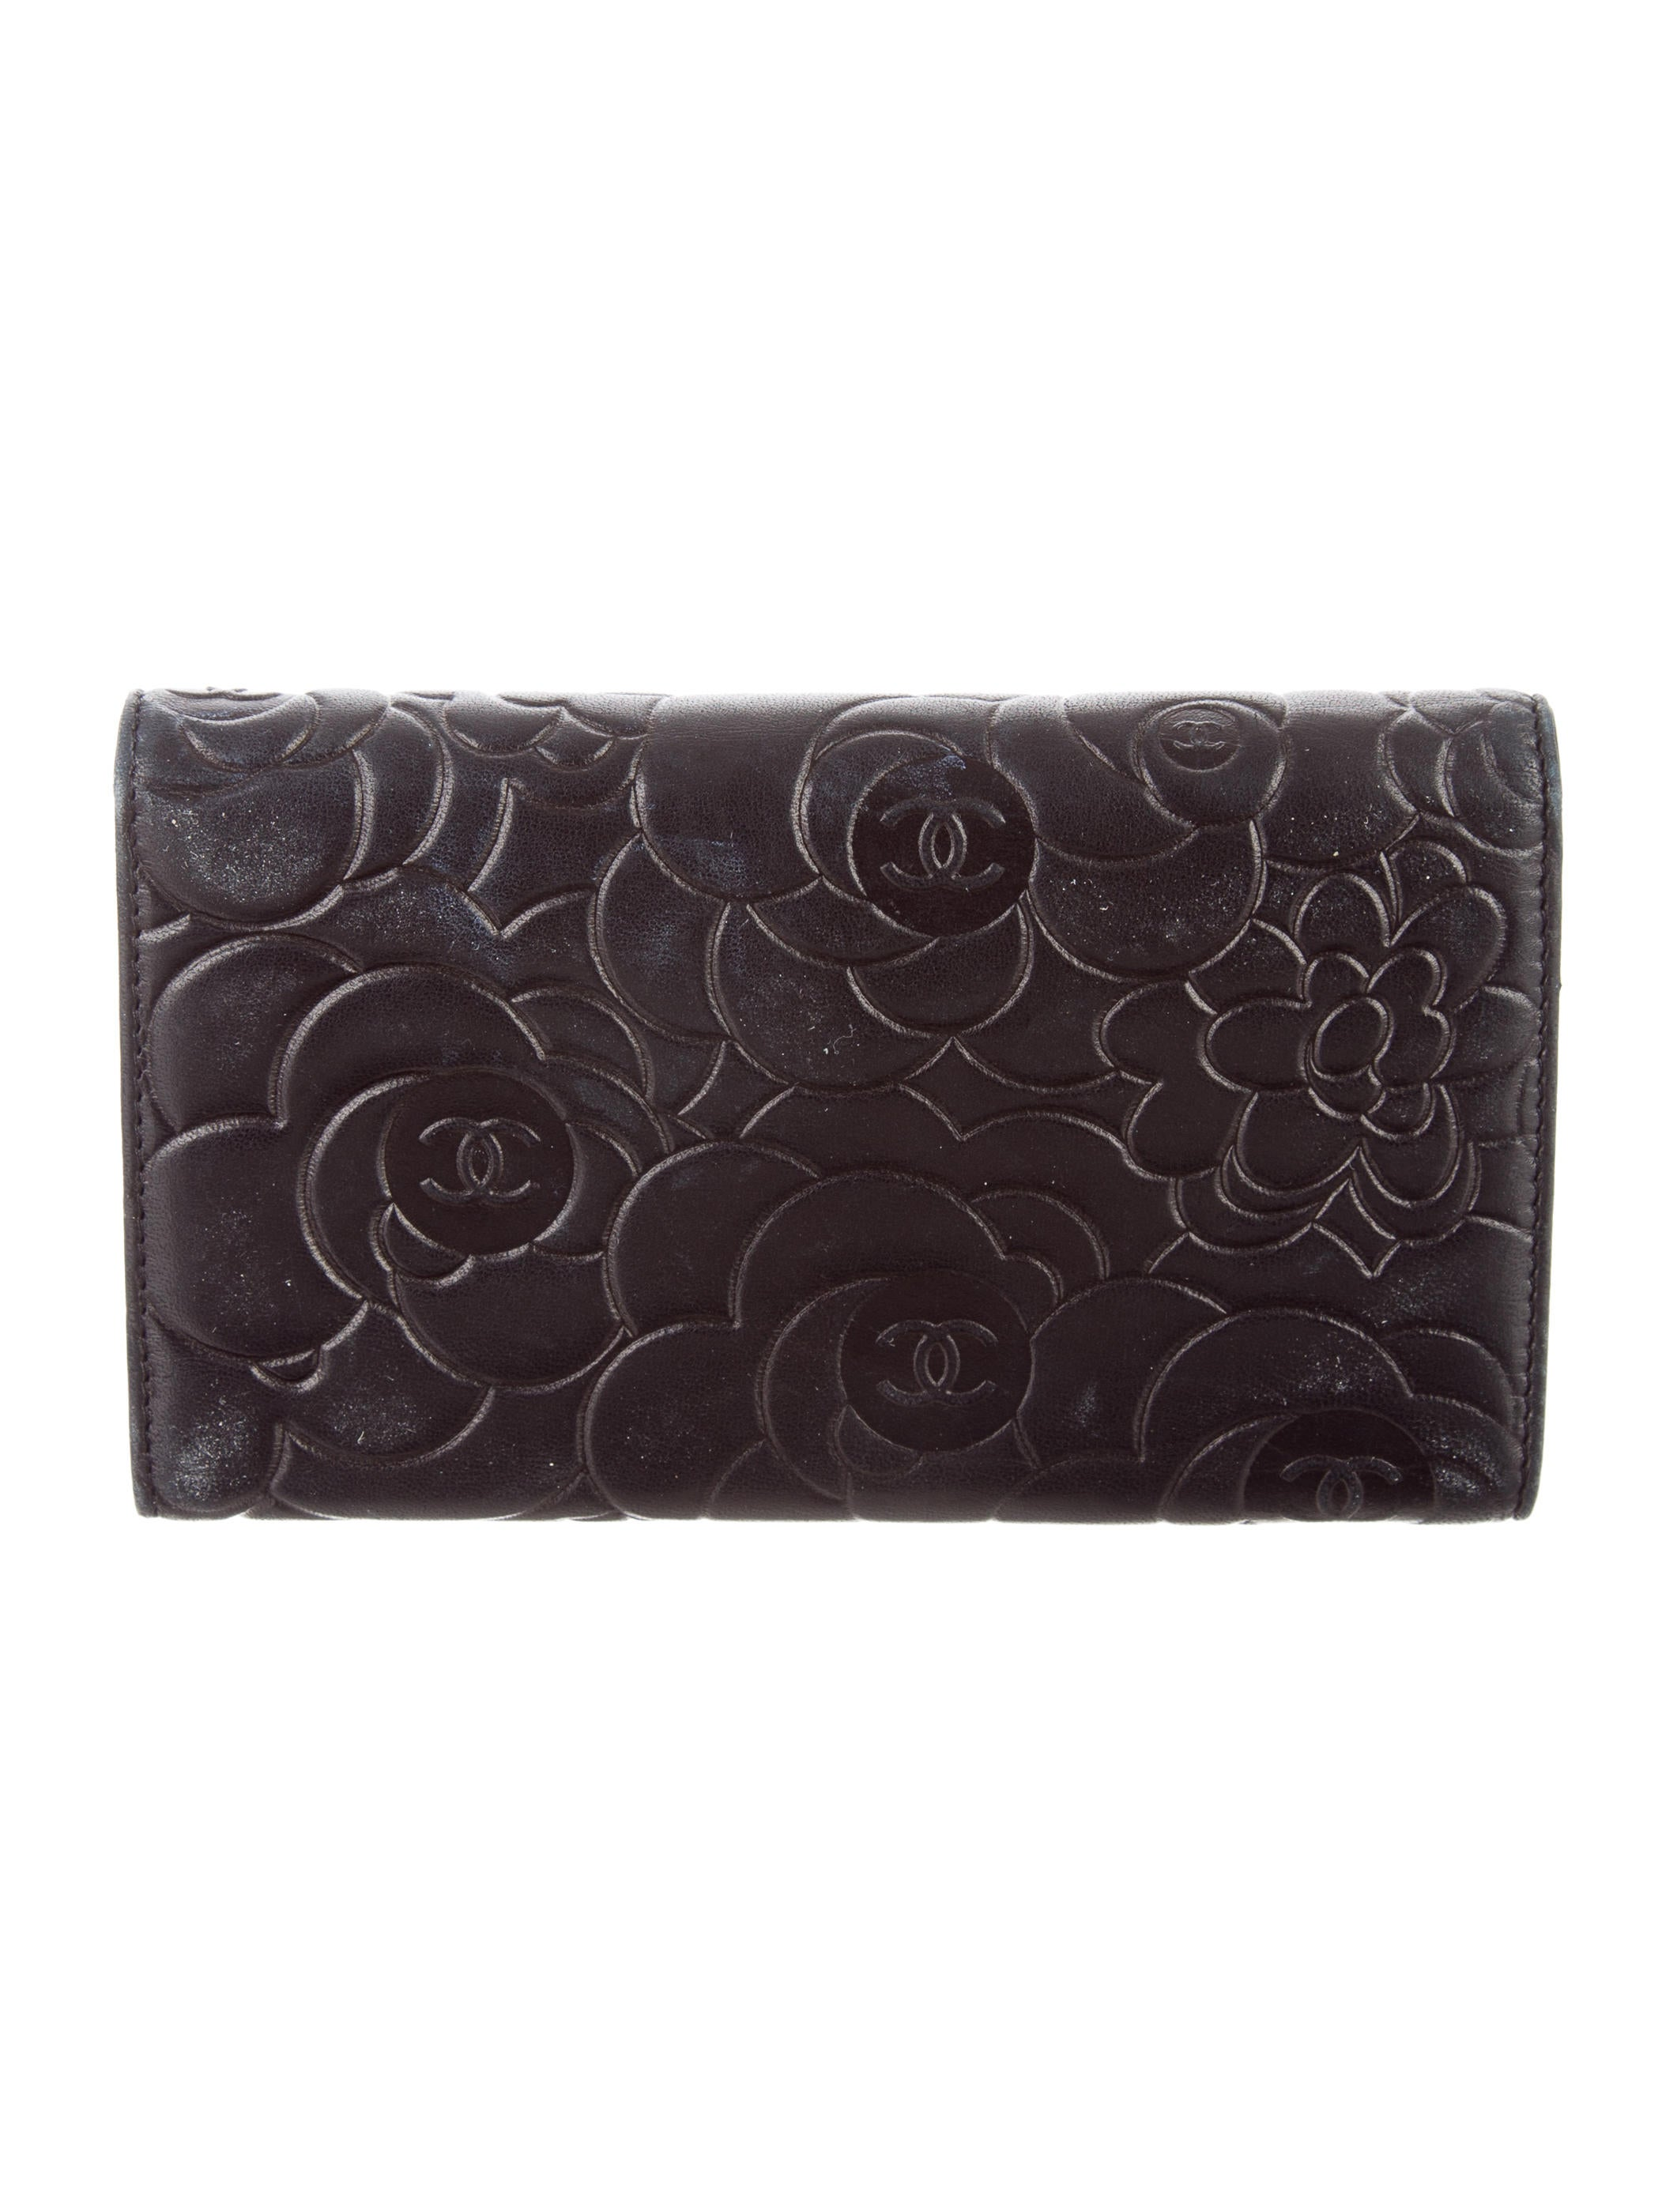 Chanel Camellia Flap Wallet - Accessories - CHA170643 ...